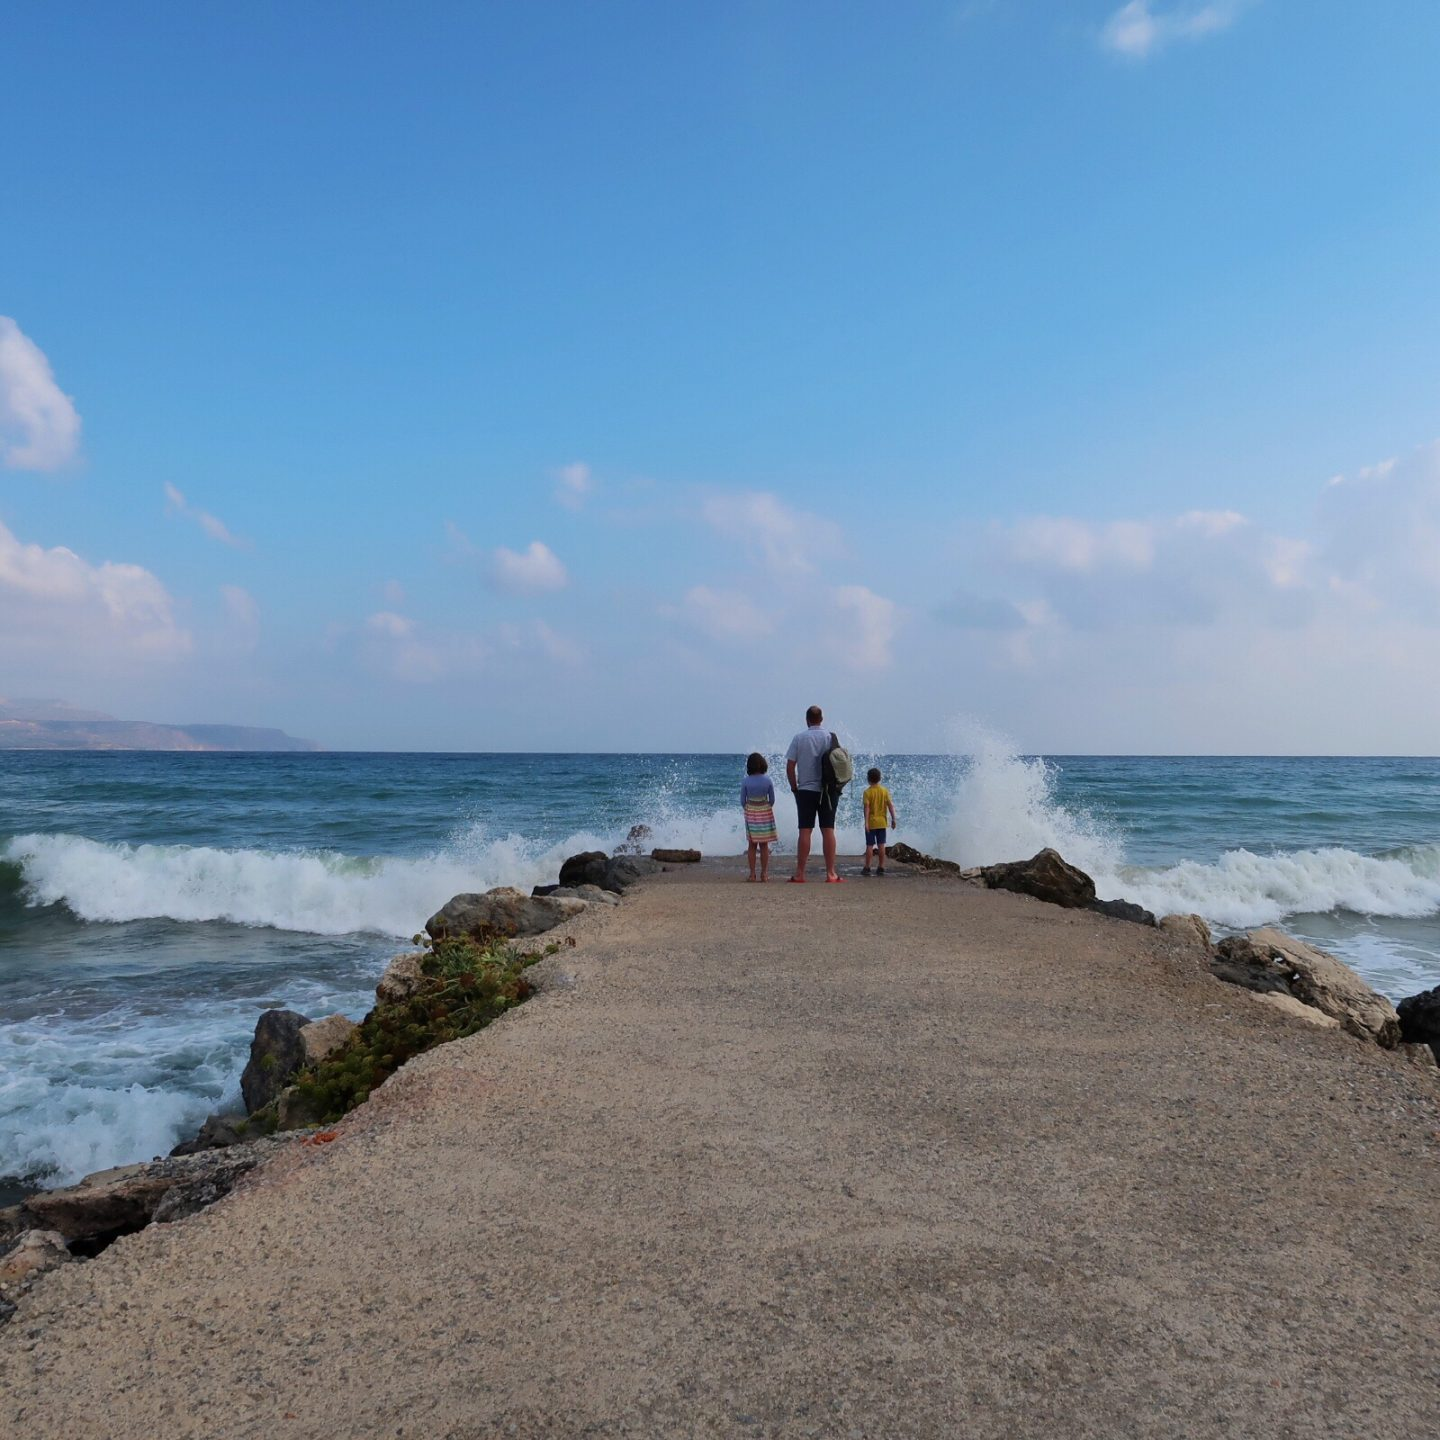 My husband and children stand on a jetty outside the Kalyves Beach Hotel while big white waves crash around them.